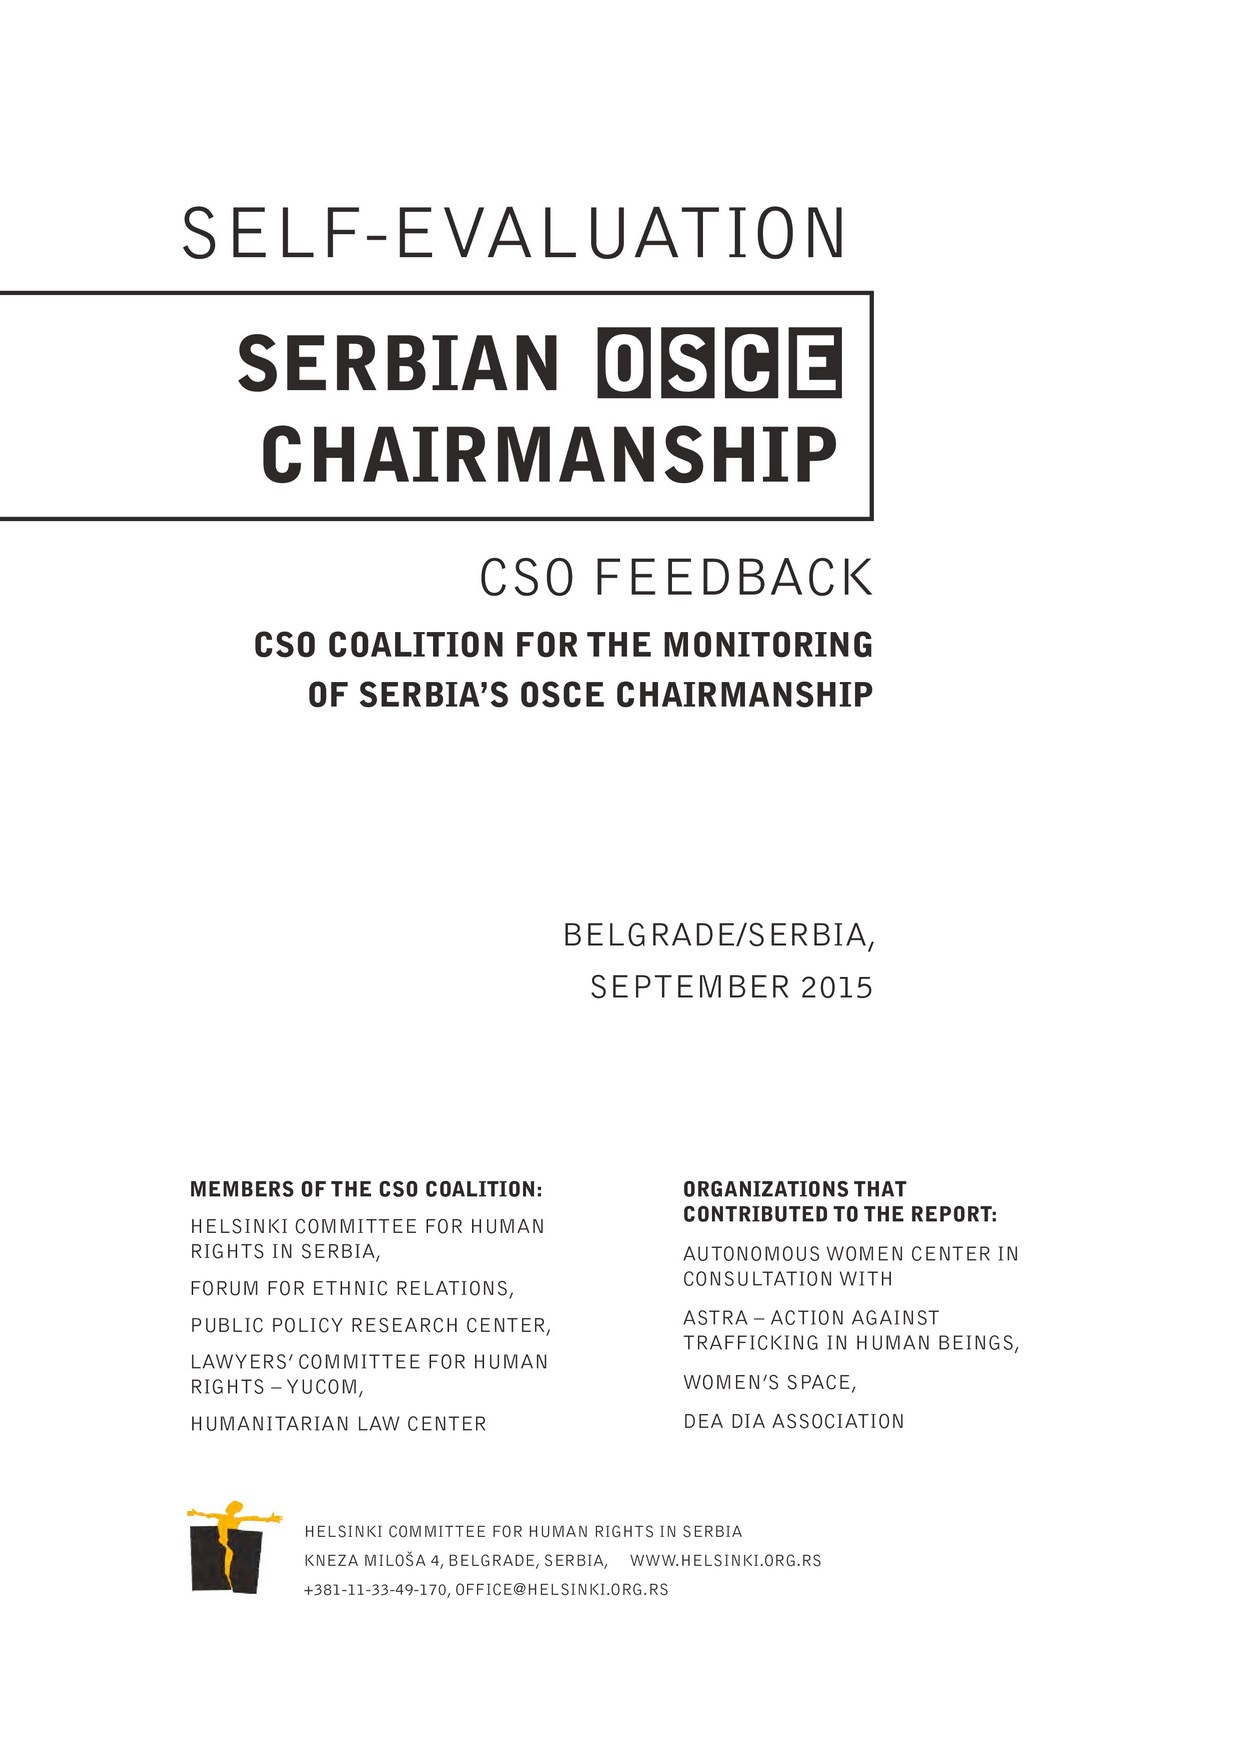 Self evaluation Serbian OSCE Chairmanship